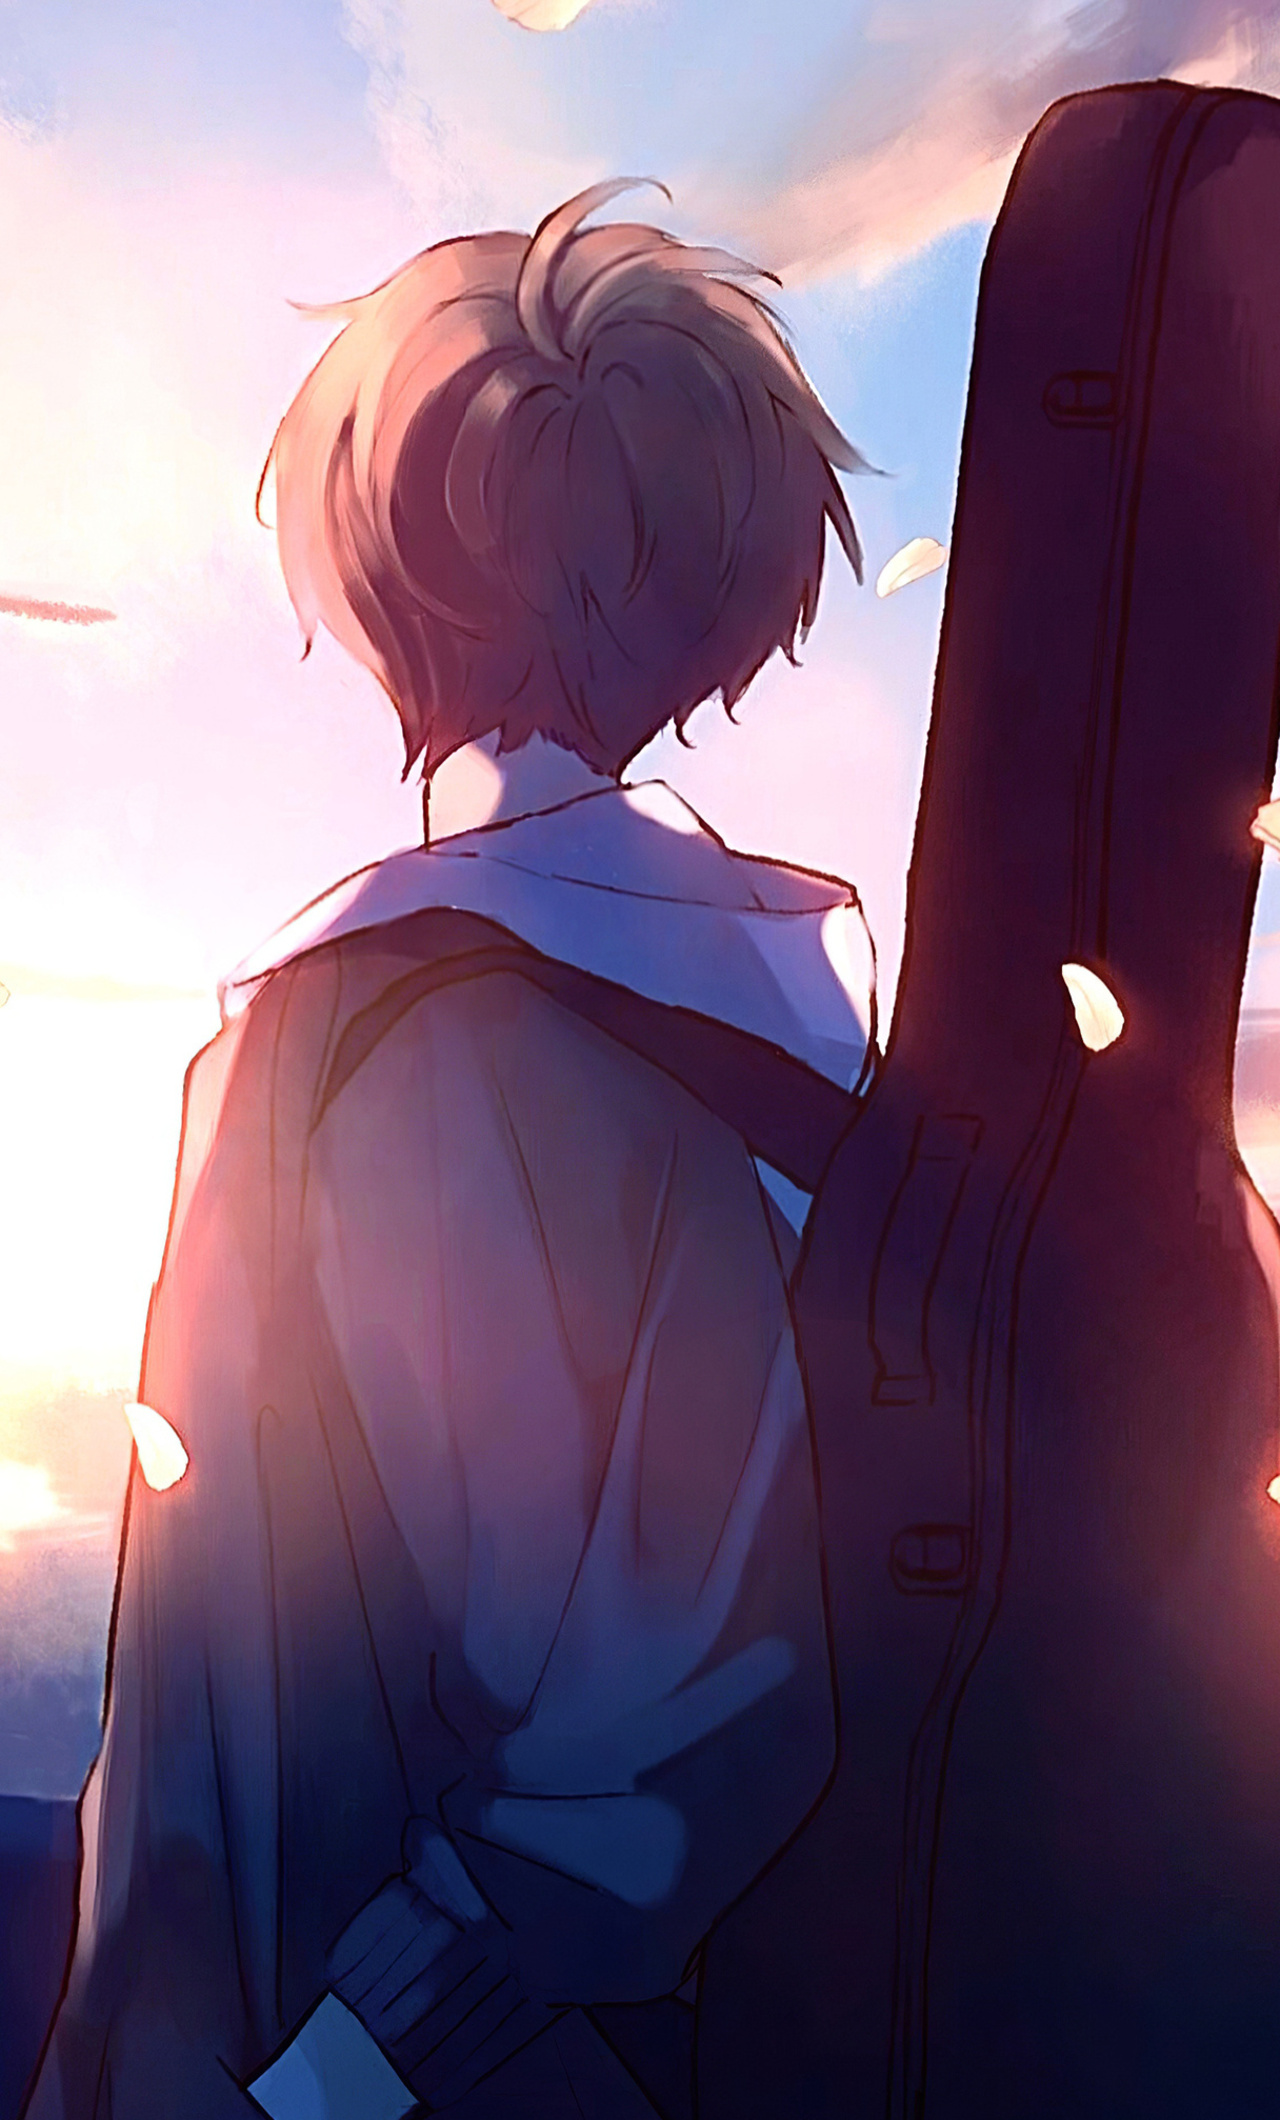 1280x2120 Anime Boy Guitar Painting Iphone 6 Hd 4k Wallpapers Images Backgrounds Photos And Pictures